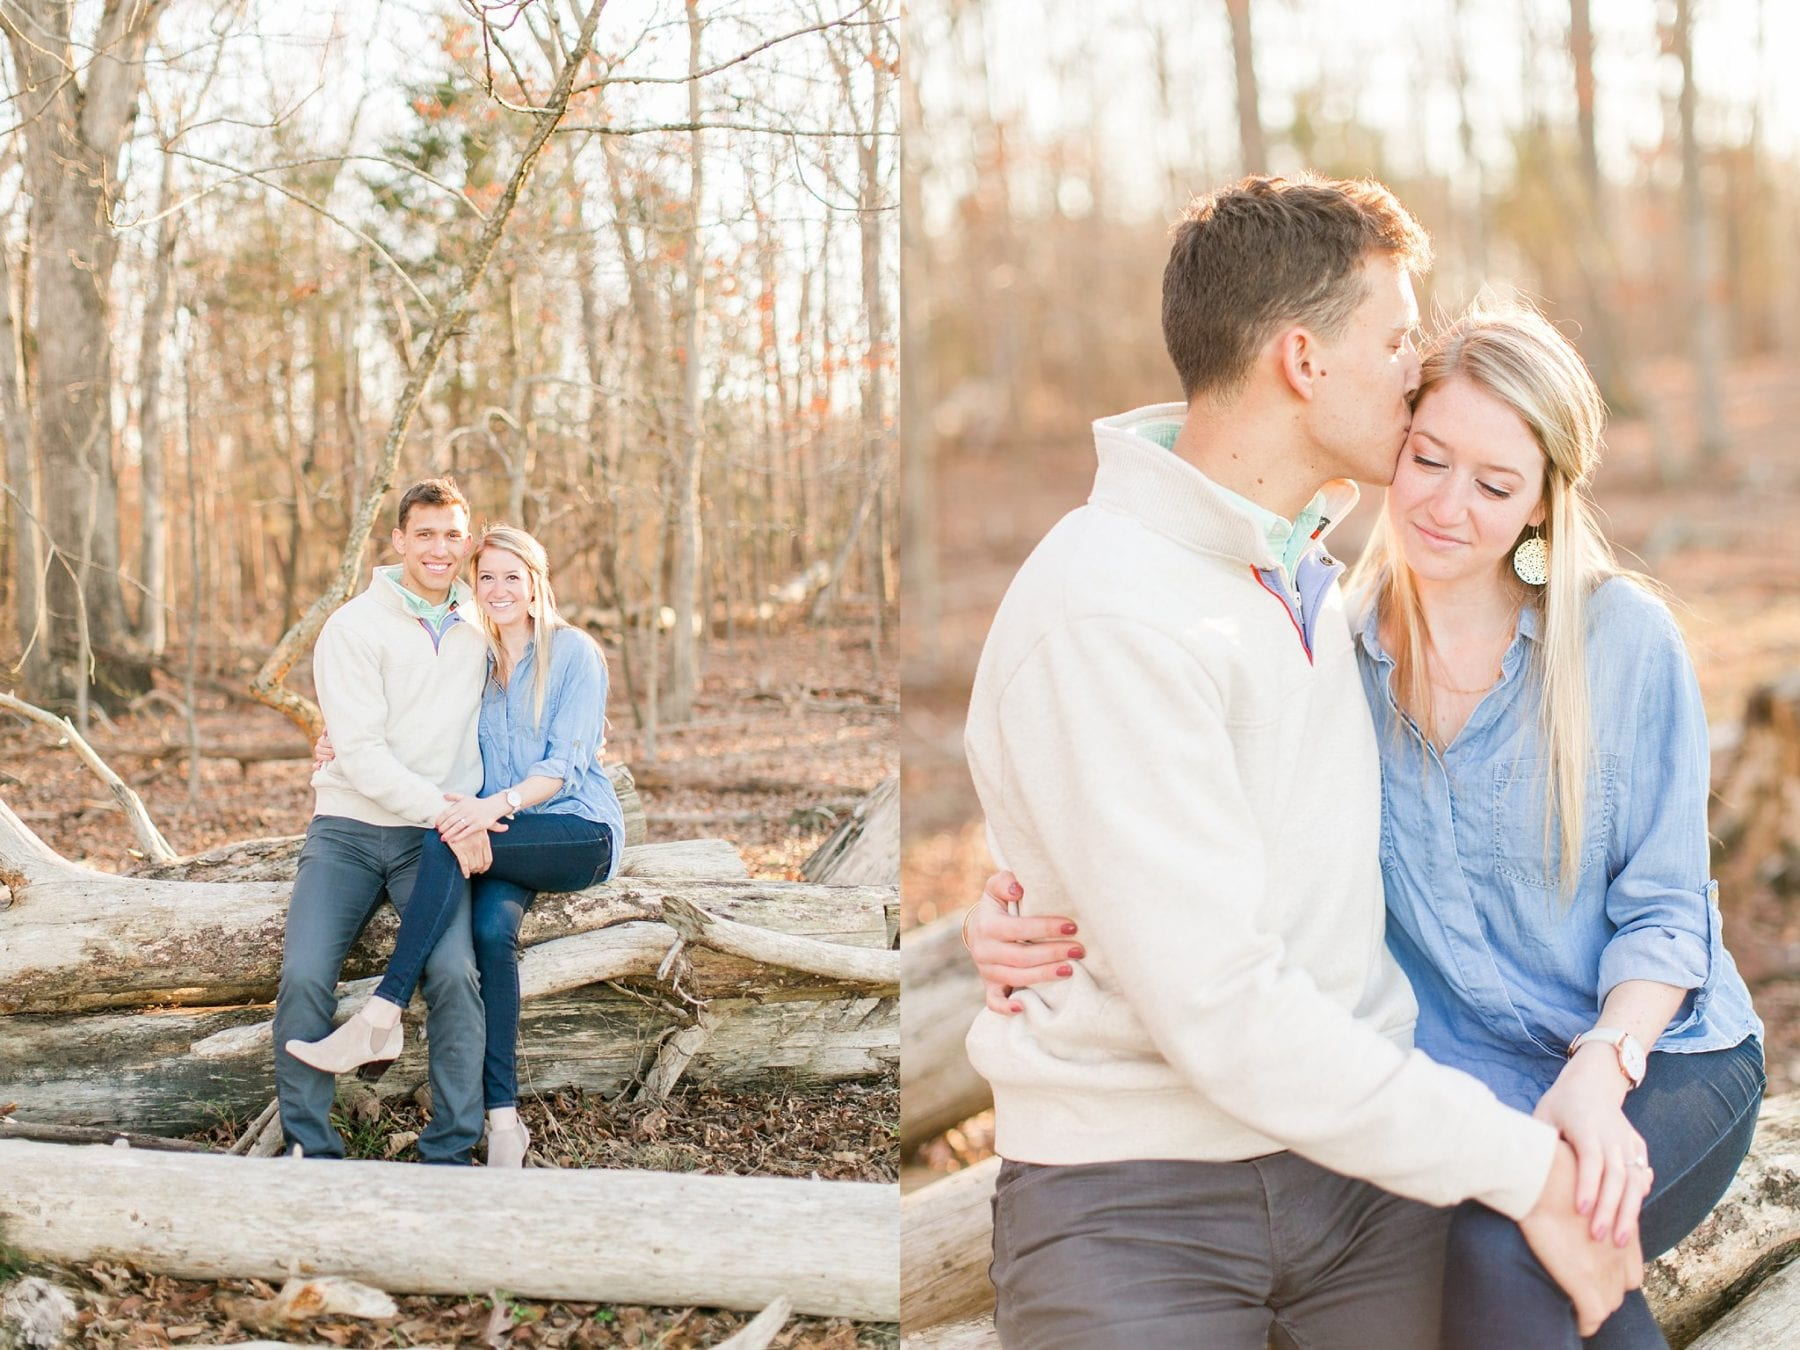 Manassas Battlefield Engagement Session Virginia Wedding Photographer Danielle & Charlie Megan Kelsey Photography-5192.jpg